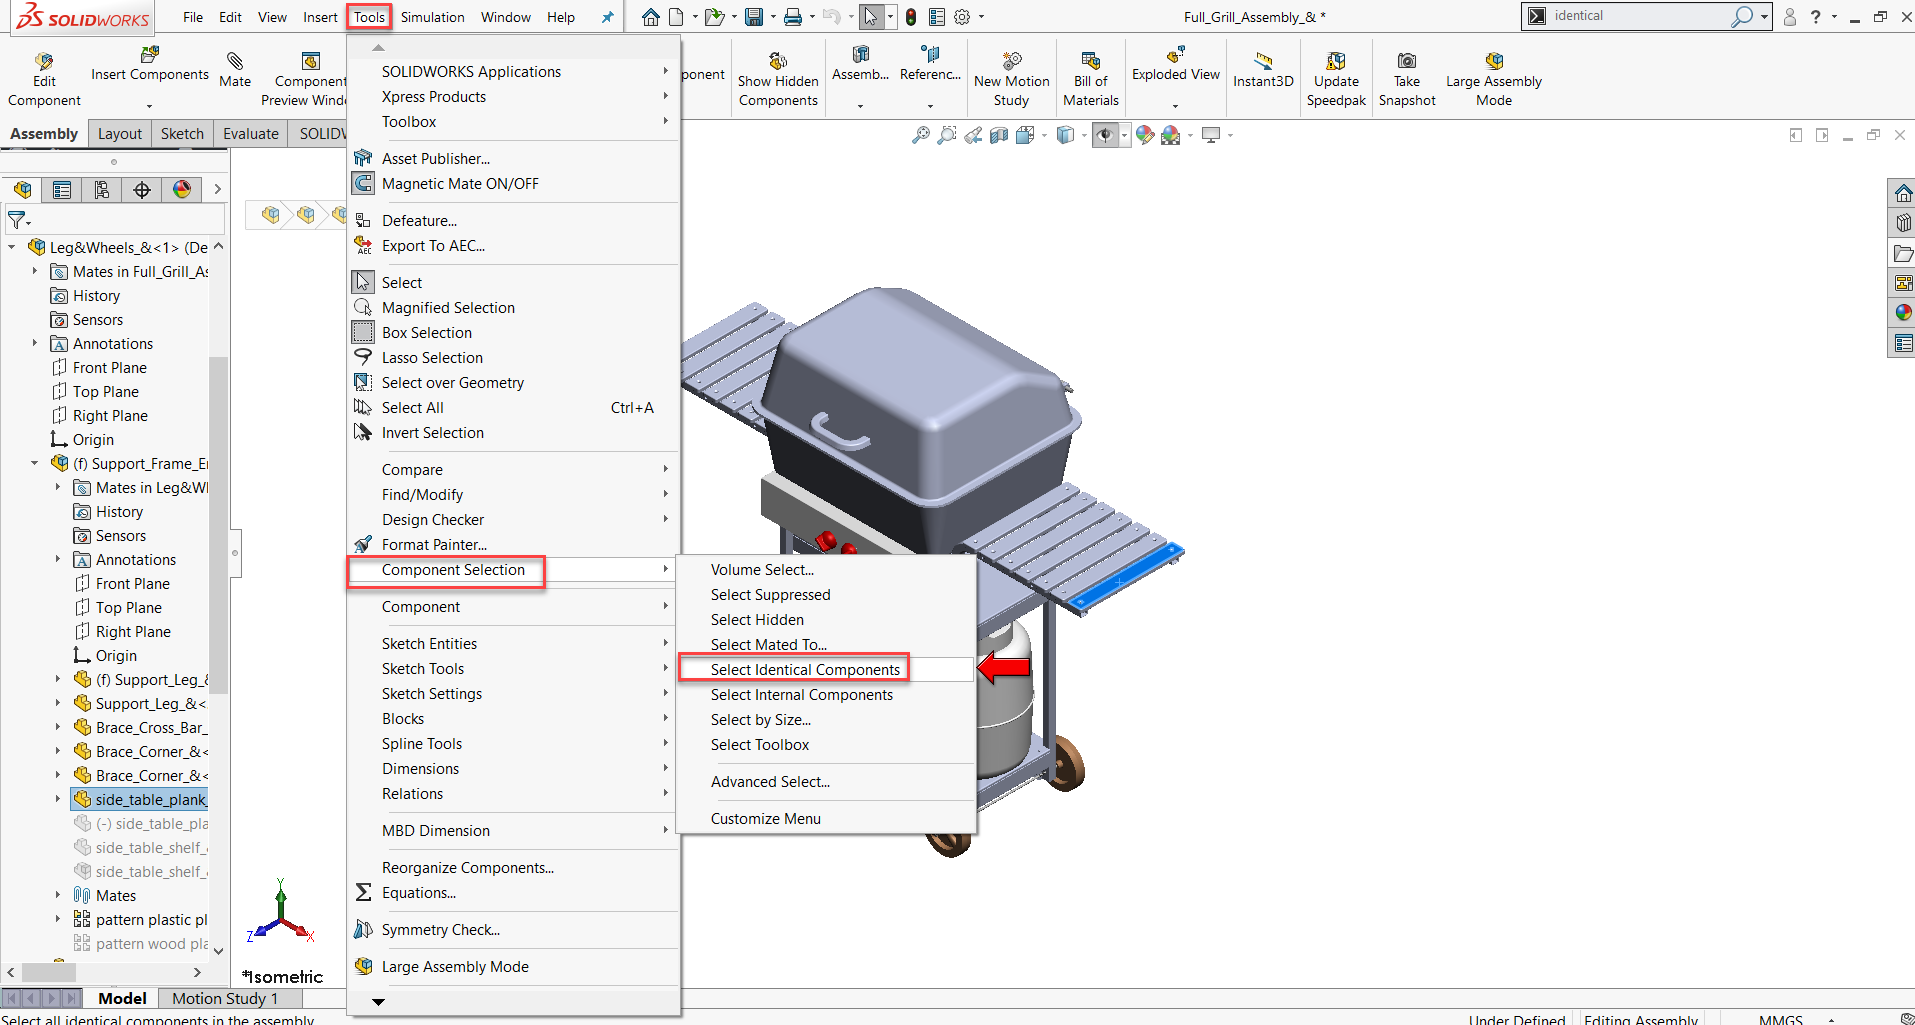 SOLIDWORKS 2019 Update frequently asked questions and answers